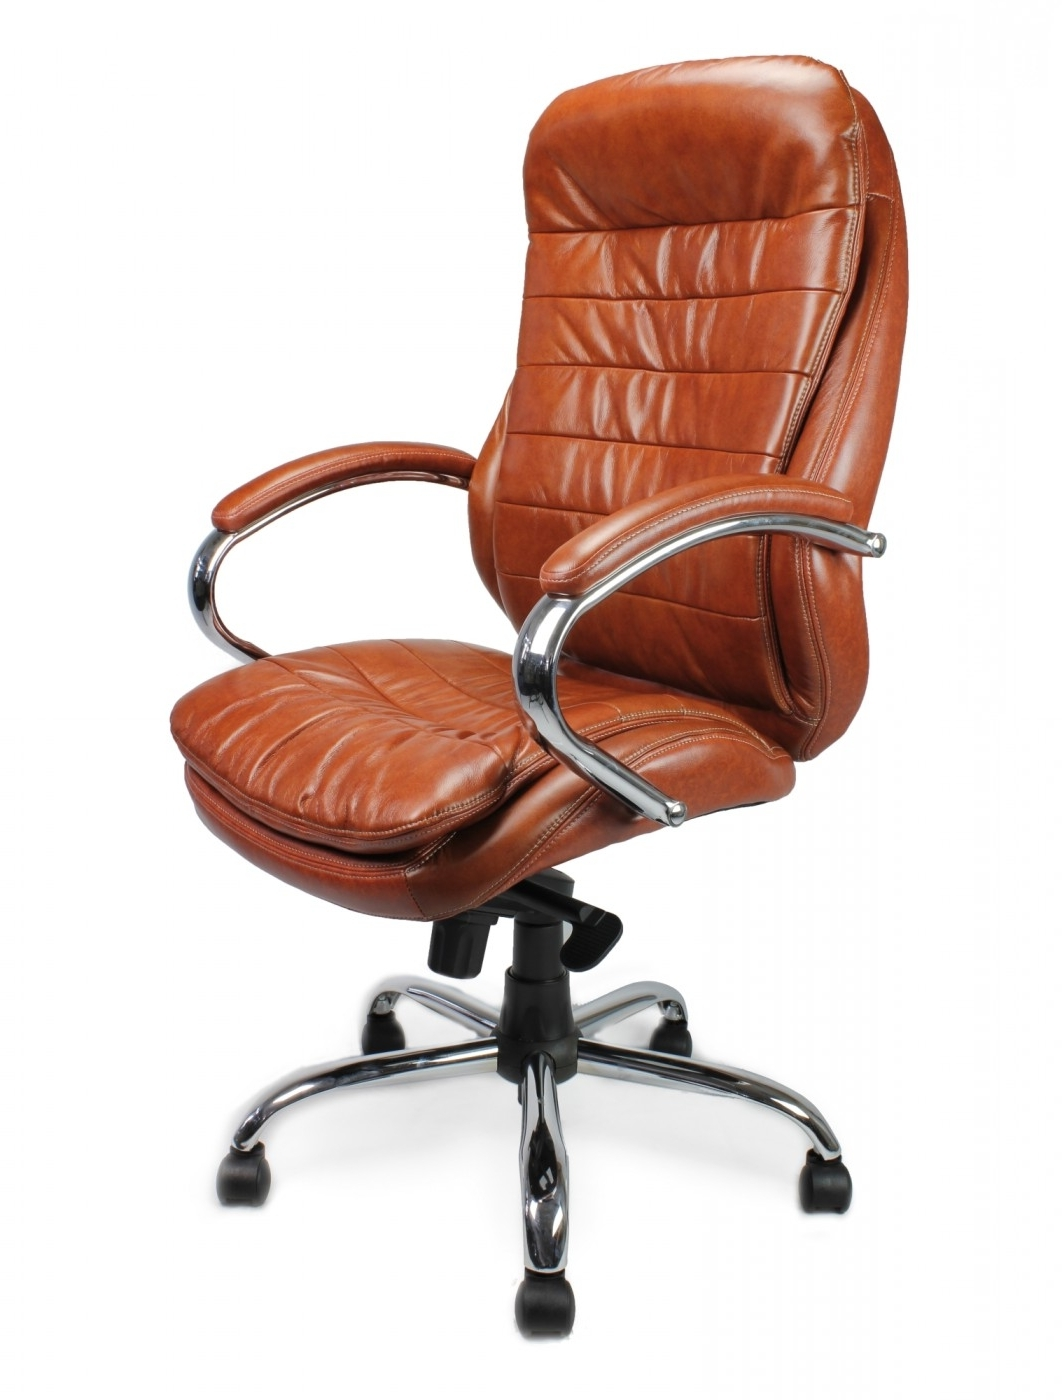 Chair : Leather And Wood Executive Office Chair Executive Leather Pertaining To Trendy Leather Wood Executive Office Chairs (View 1 of 20)